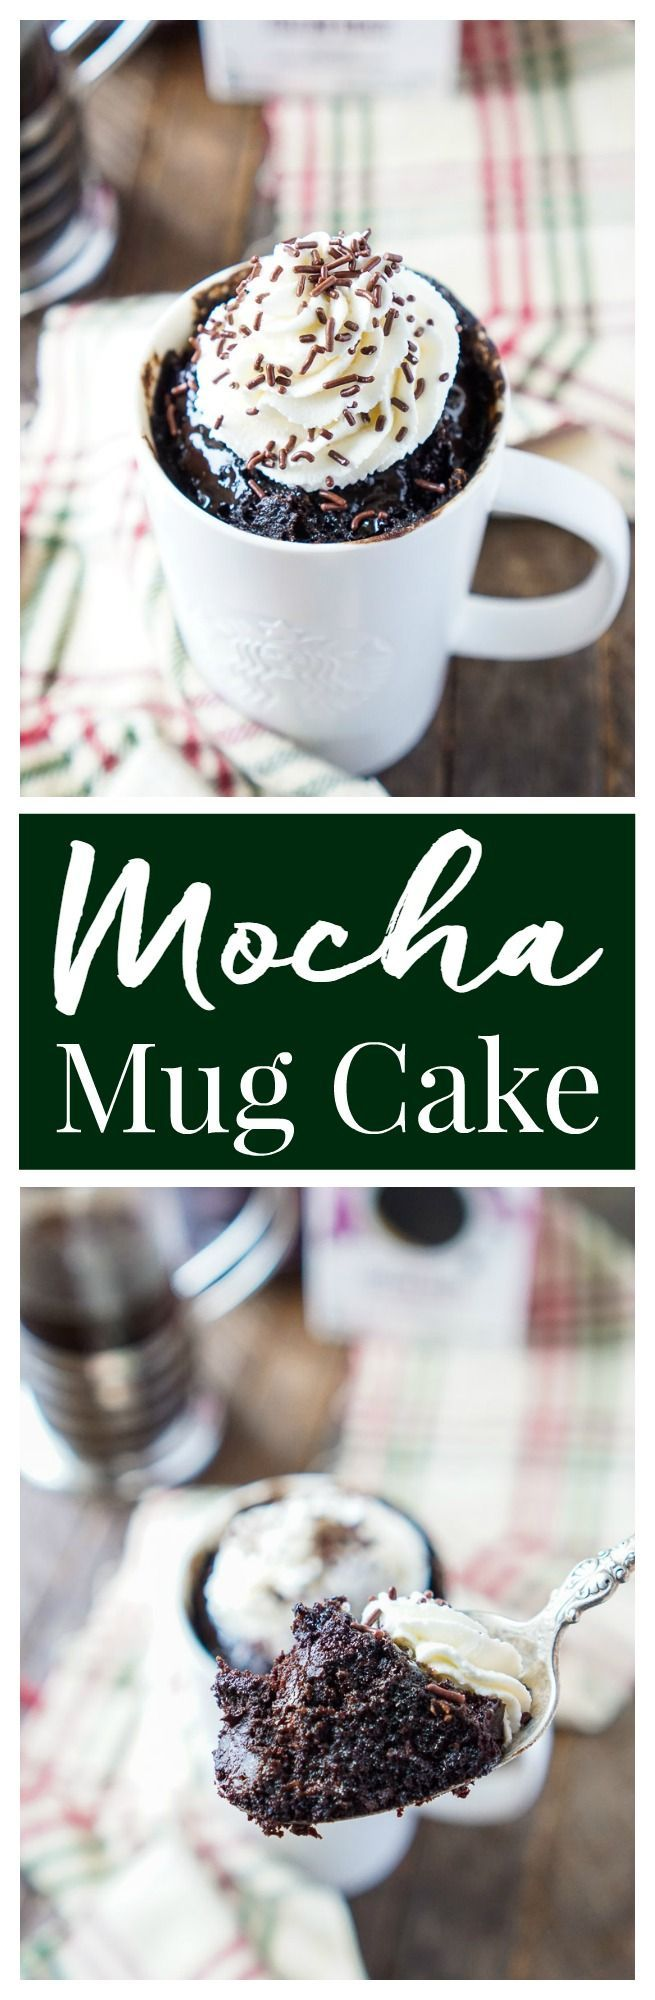 This Mocha Mug Cake is bold and rich and so easy to make